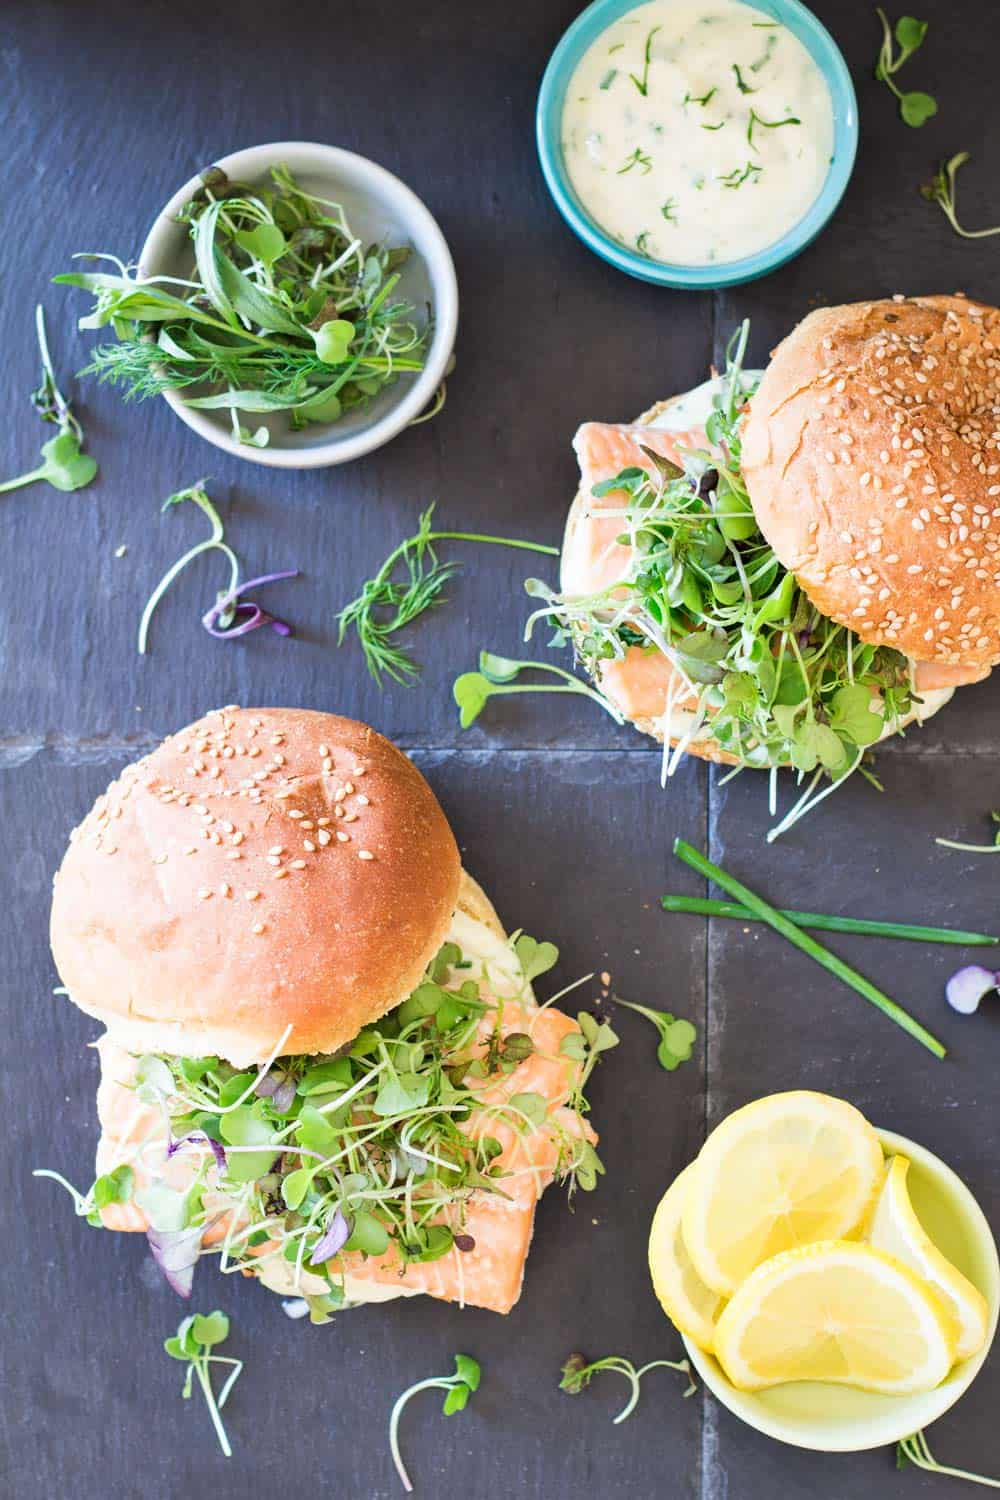 Salmon Burgers with Herb Mayonnaise and micro greens